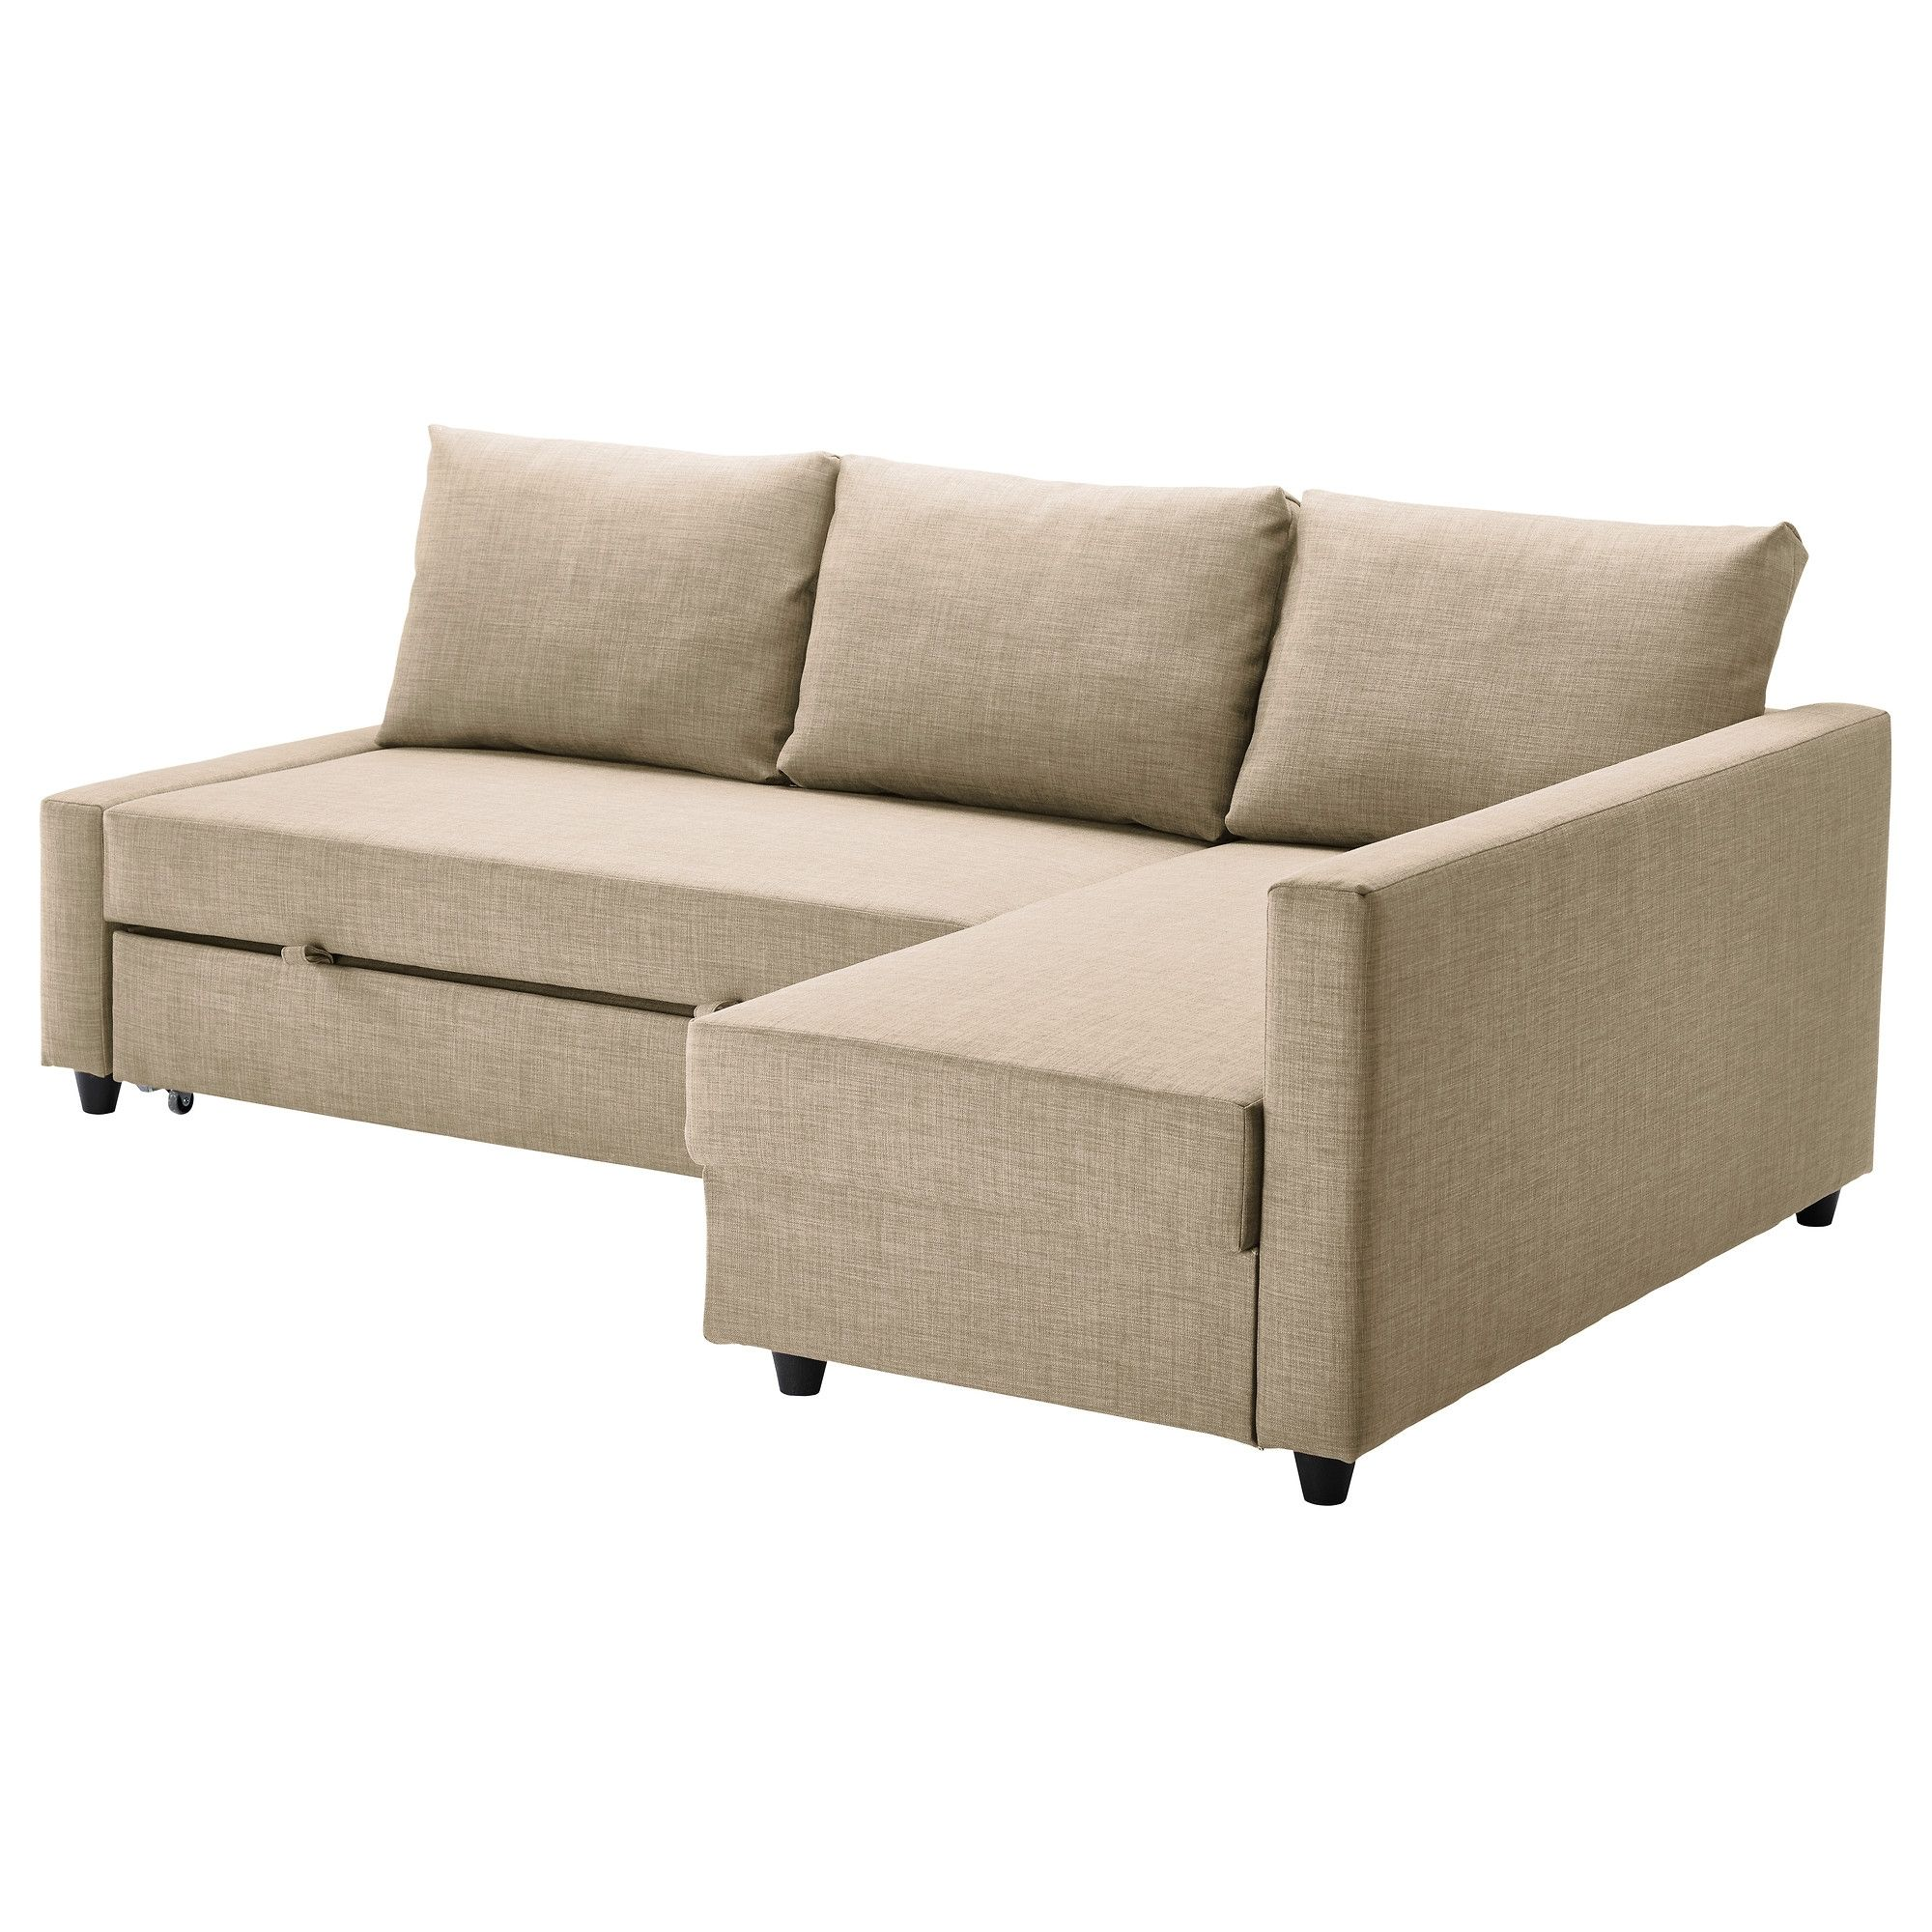 Ikea Sectional Sofa Beds Corner Sofa Bed With Storage Ikea Sofa Bed Best Sleeper Sofa